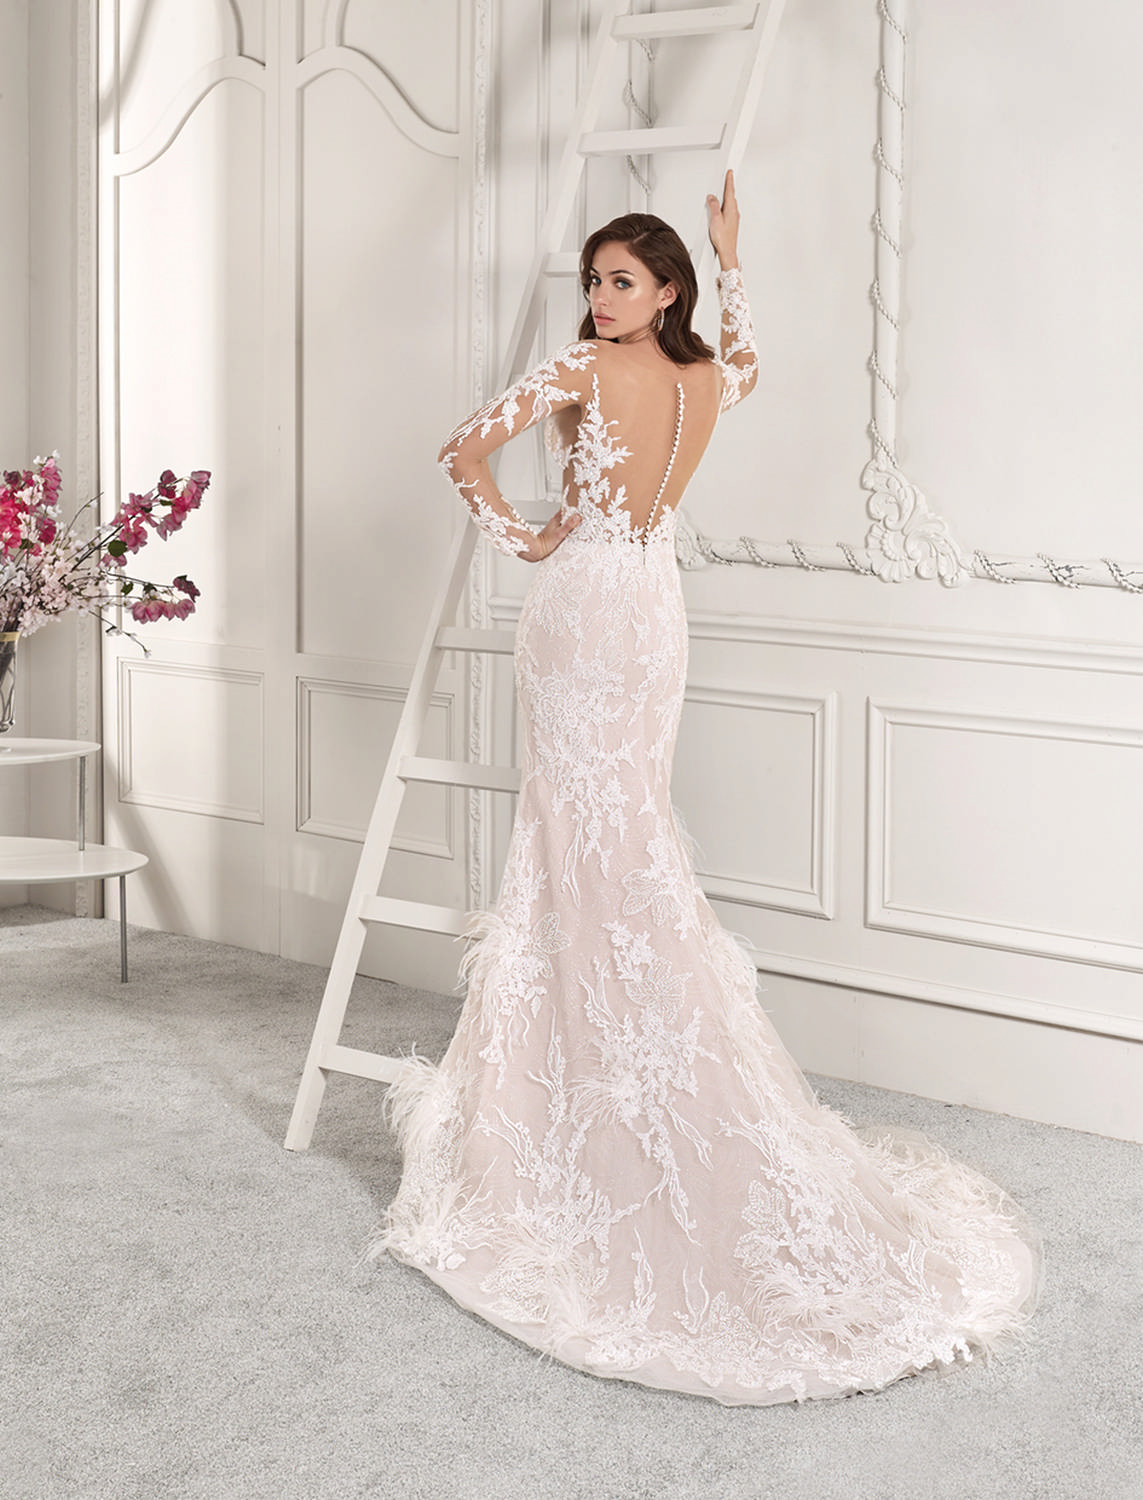 Demetrios Bridal Gown, Premier Bride's Perfect Dress, Trunk Show Fresno